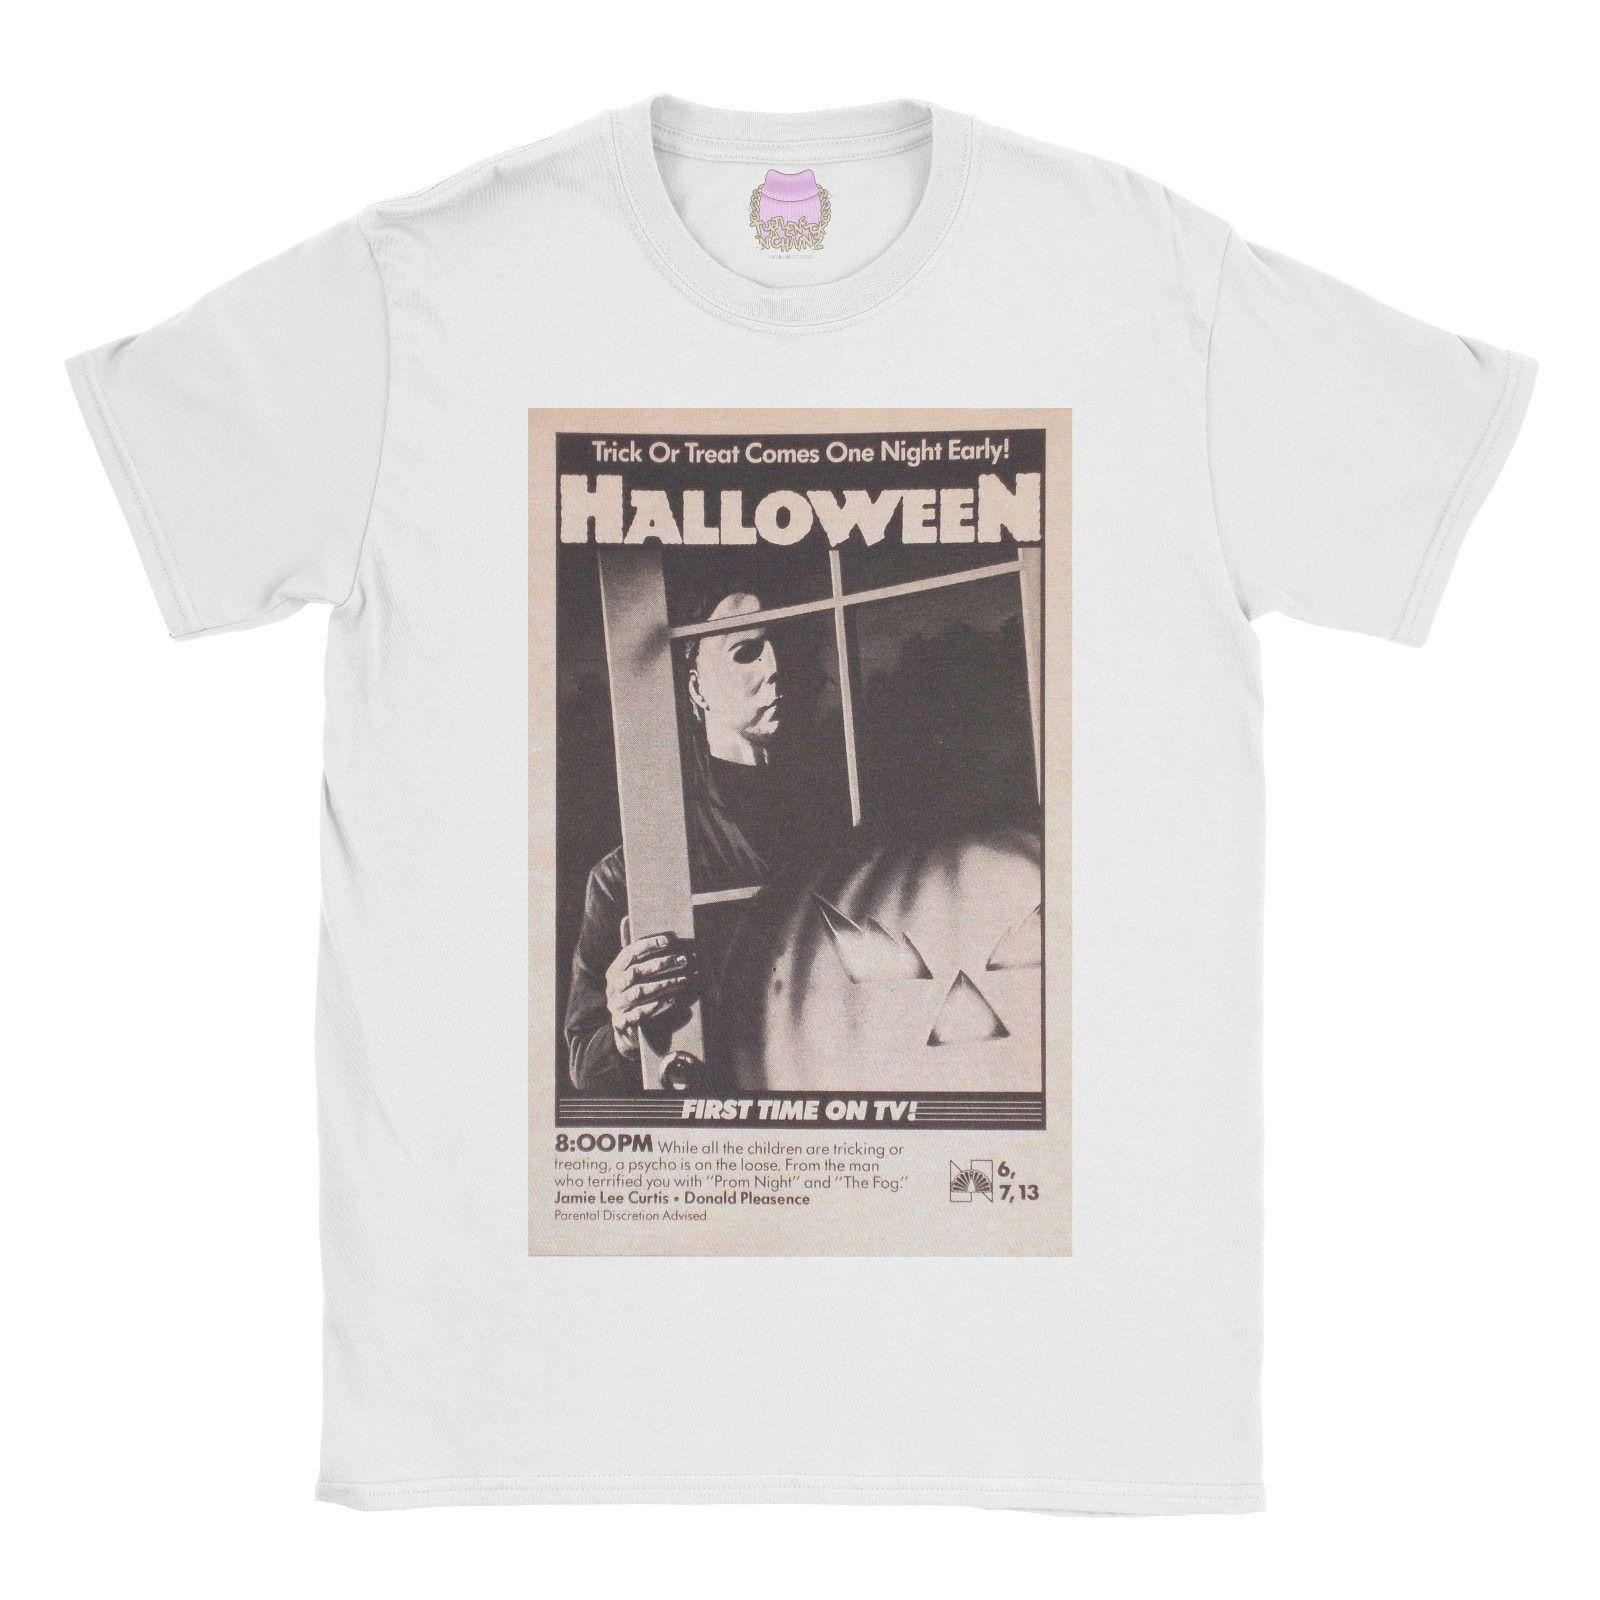 2d12f55a3e8411 Halloween Vintage T Shirt Horror Gothic Poster Movie Tshirt Tee Top Old  School Funny Unisex Cheap T Shirts Online Biker T Shirts From  Clothing_deals, ...